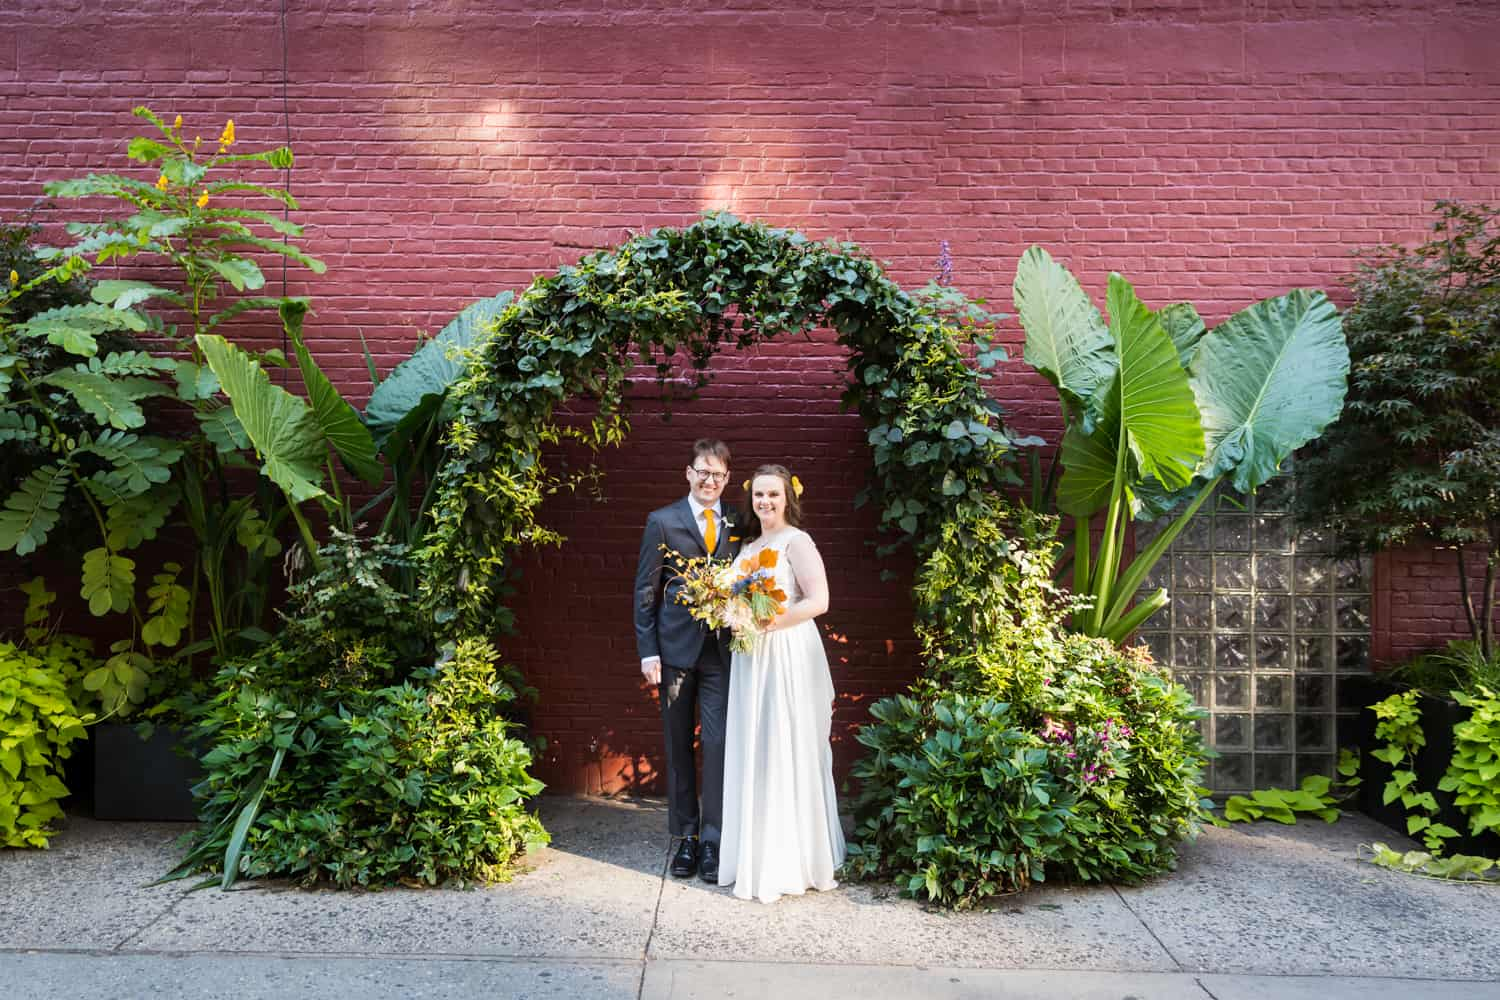 Bride and groom under arch of plants on NYC sidewalk